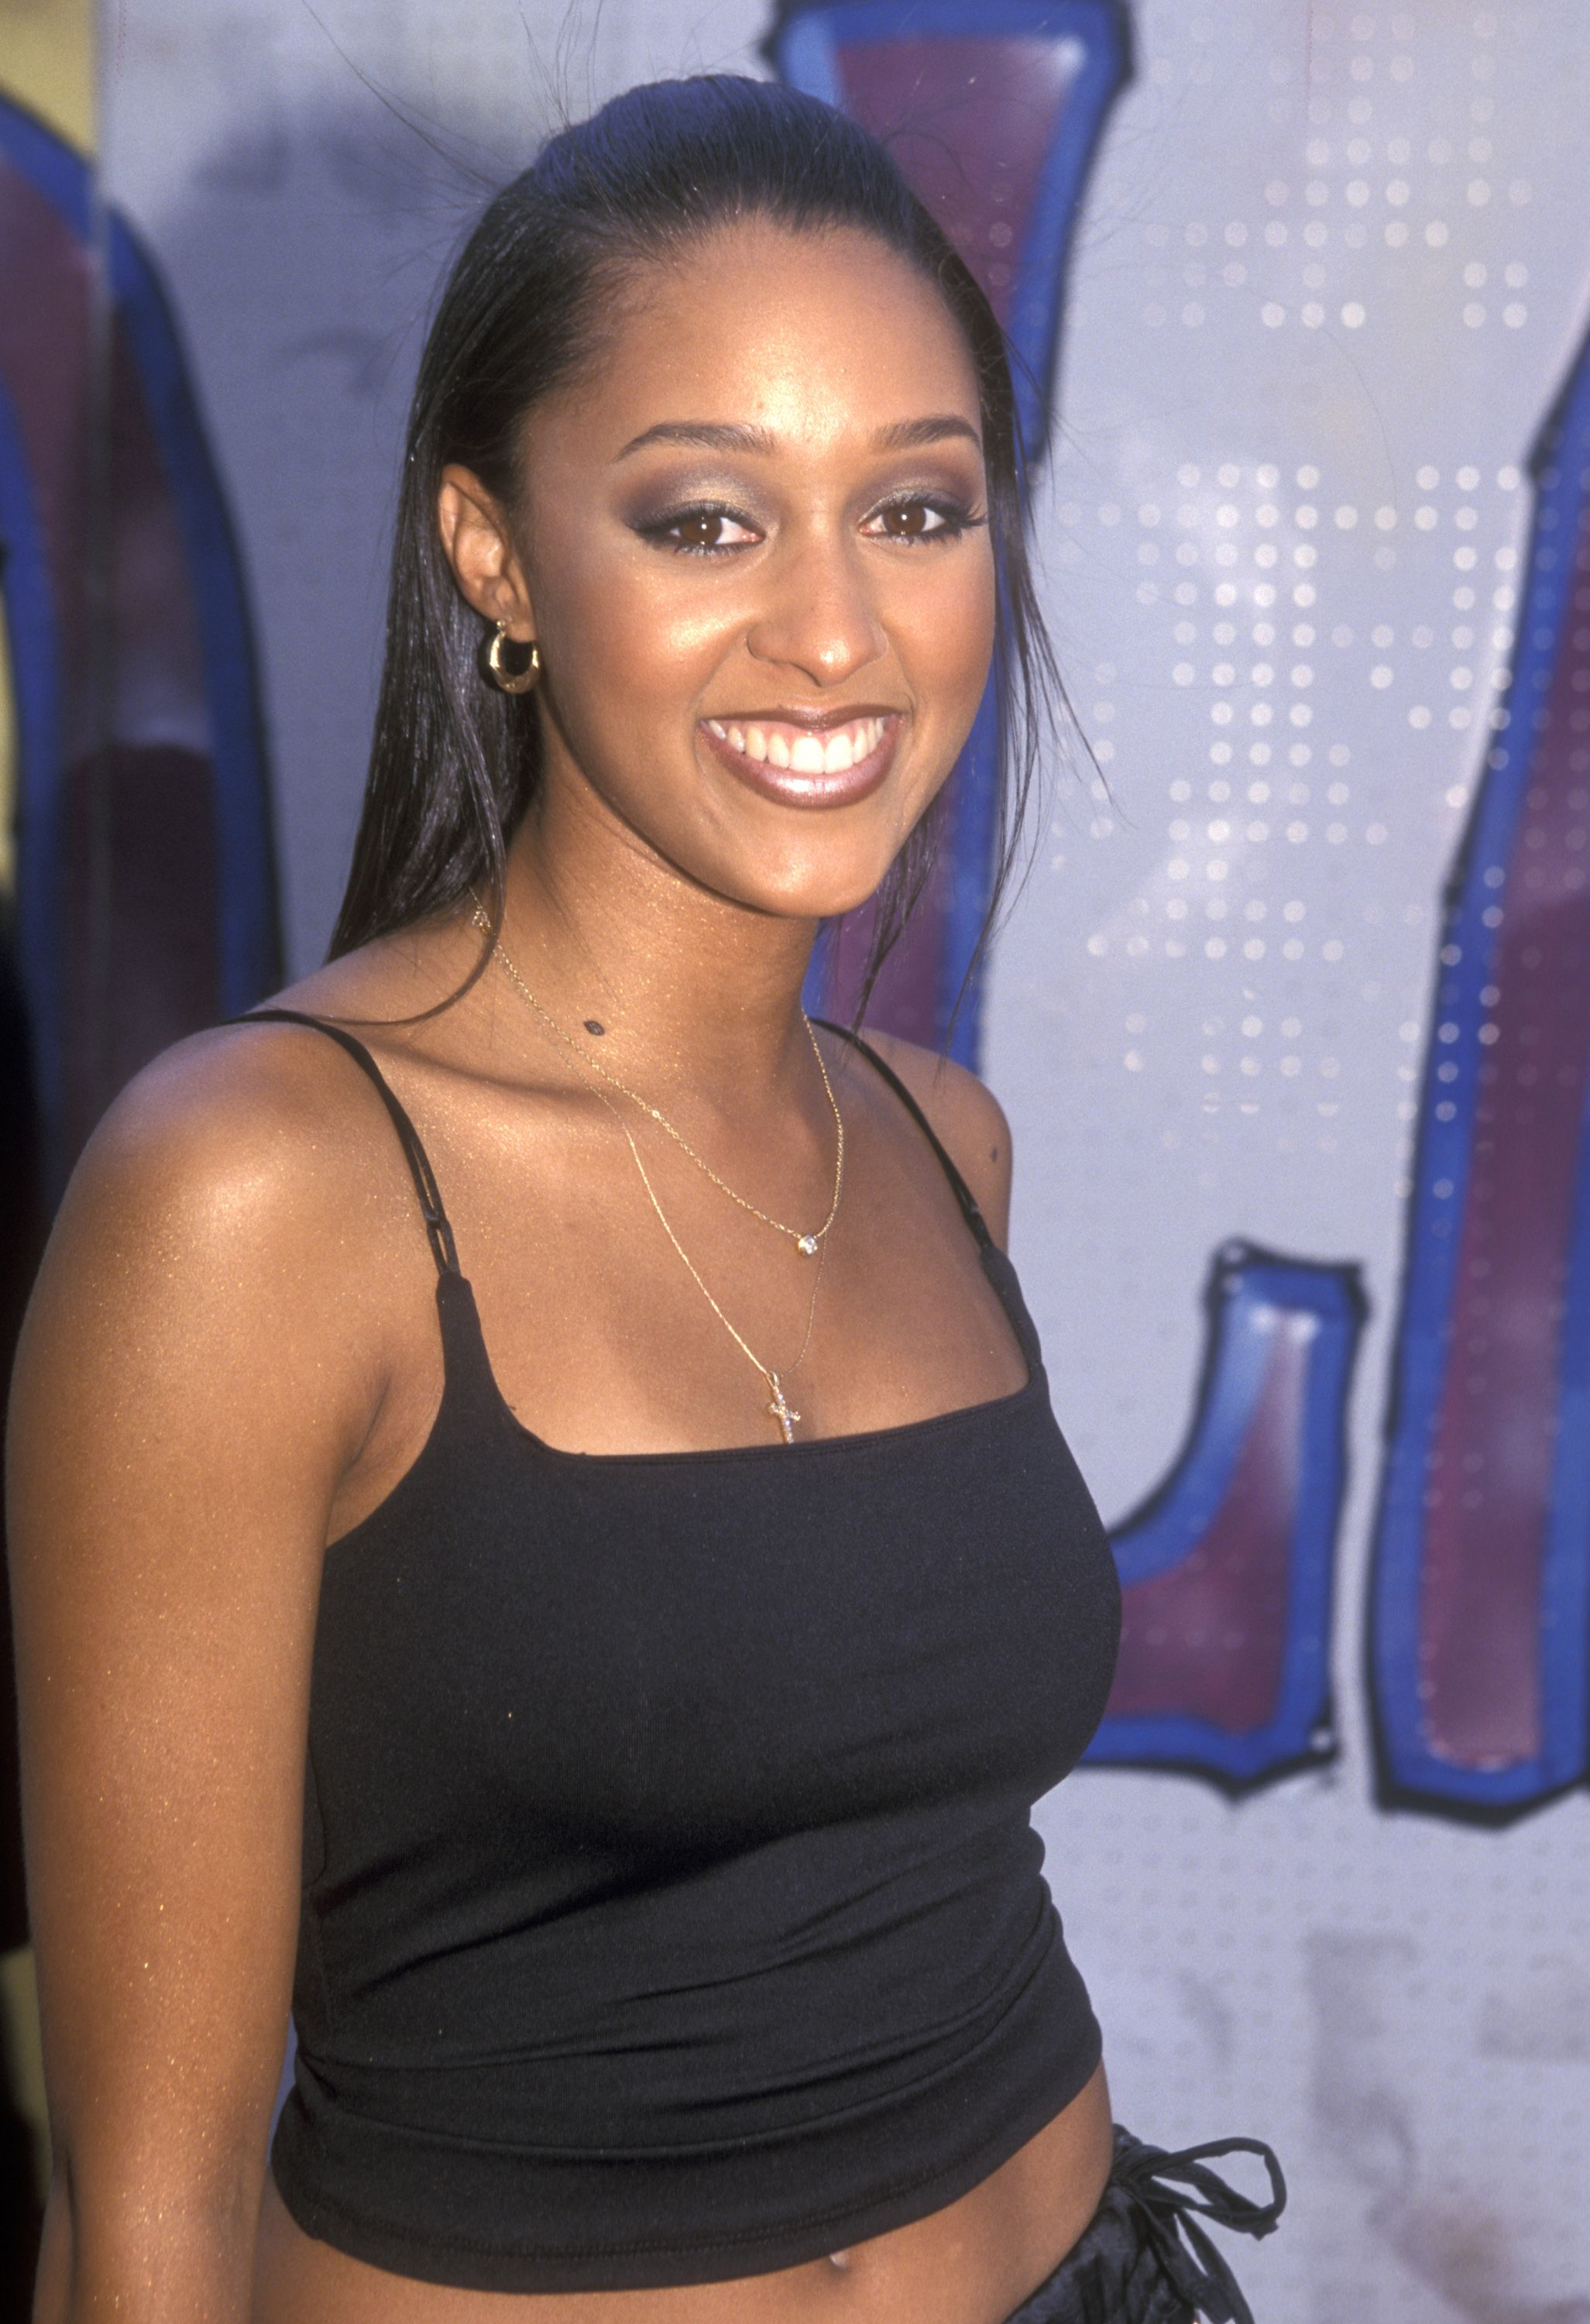 Tia Mowry at the Annual Soul Train Lady of Soul Awards on September 3, 1999 in Santa Monica. | Photo: Getty Images